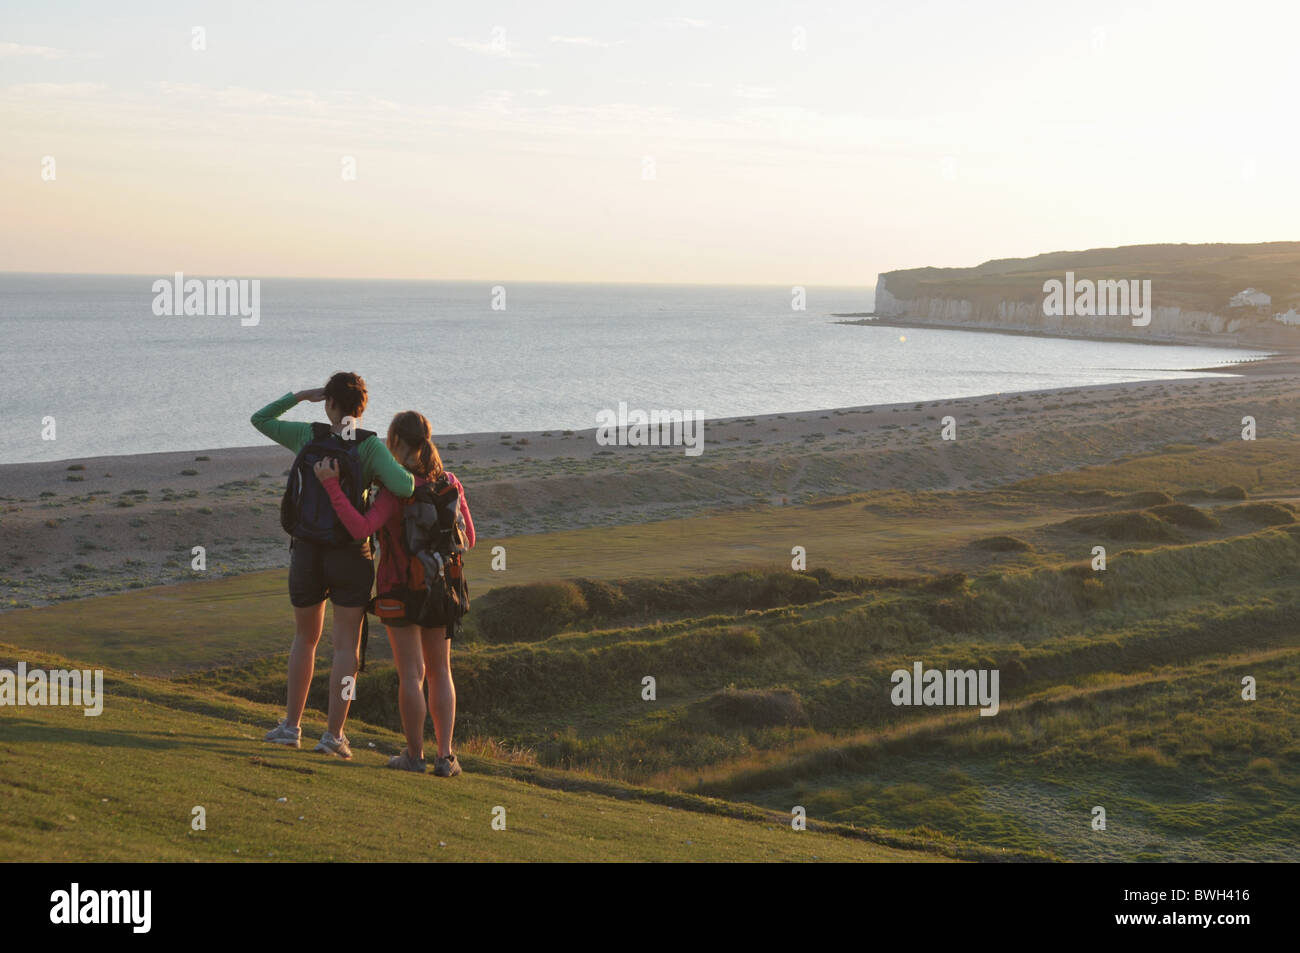 Relax Fh Rt Hiker Relax Stock Photos Hiker Relax Stock Images Alamy